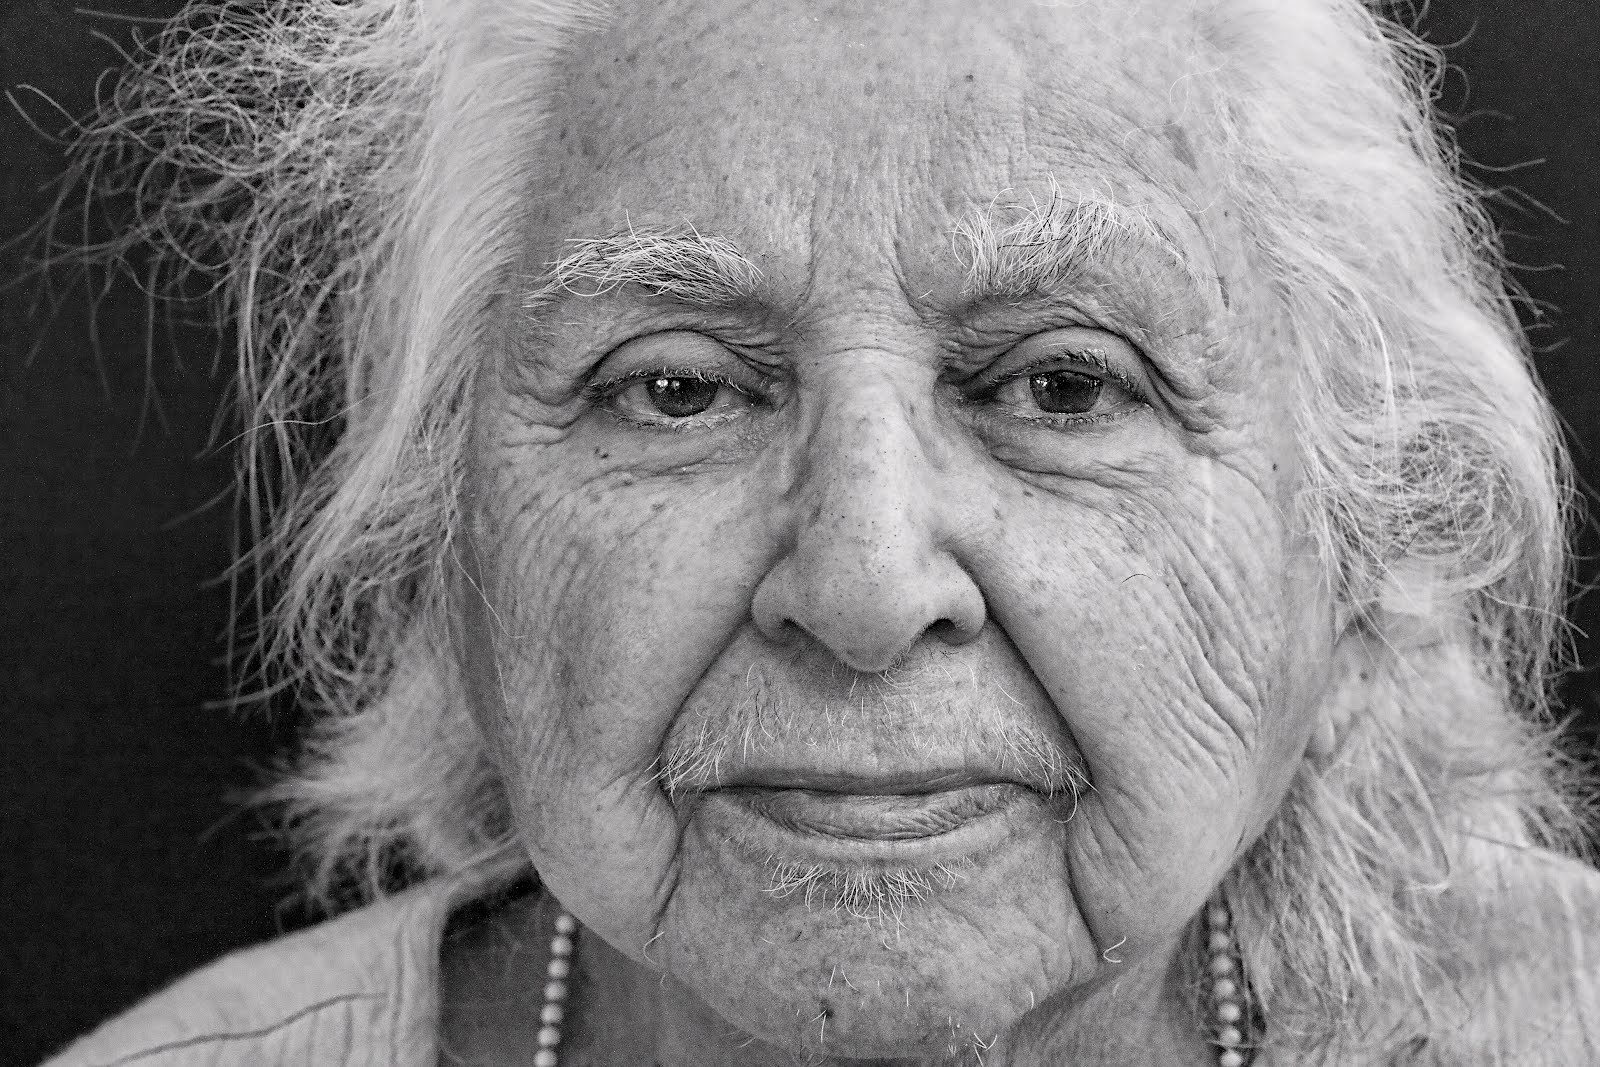 oldest Image source over the course of history, a handful of super humans have beaten the odds by living well beyond even the most generous life-expectancy predictions.